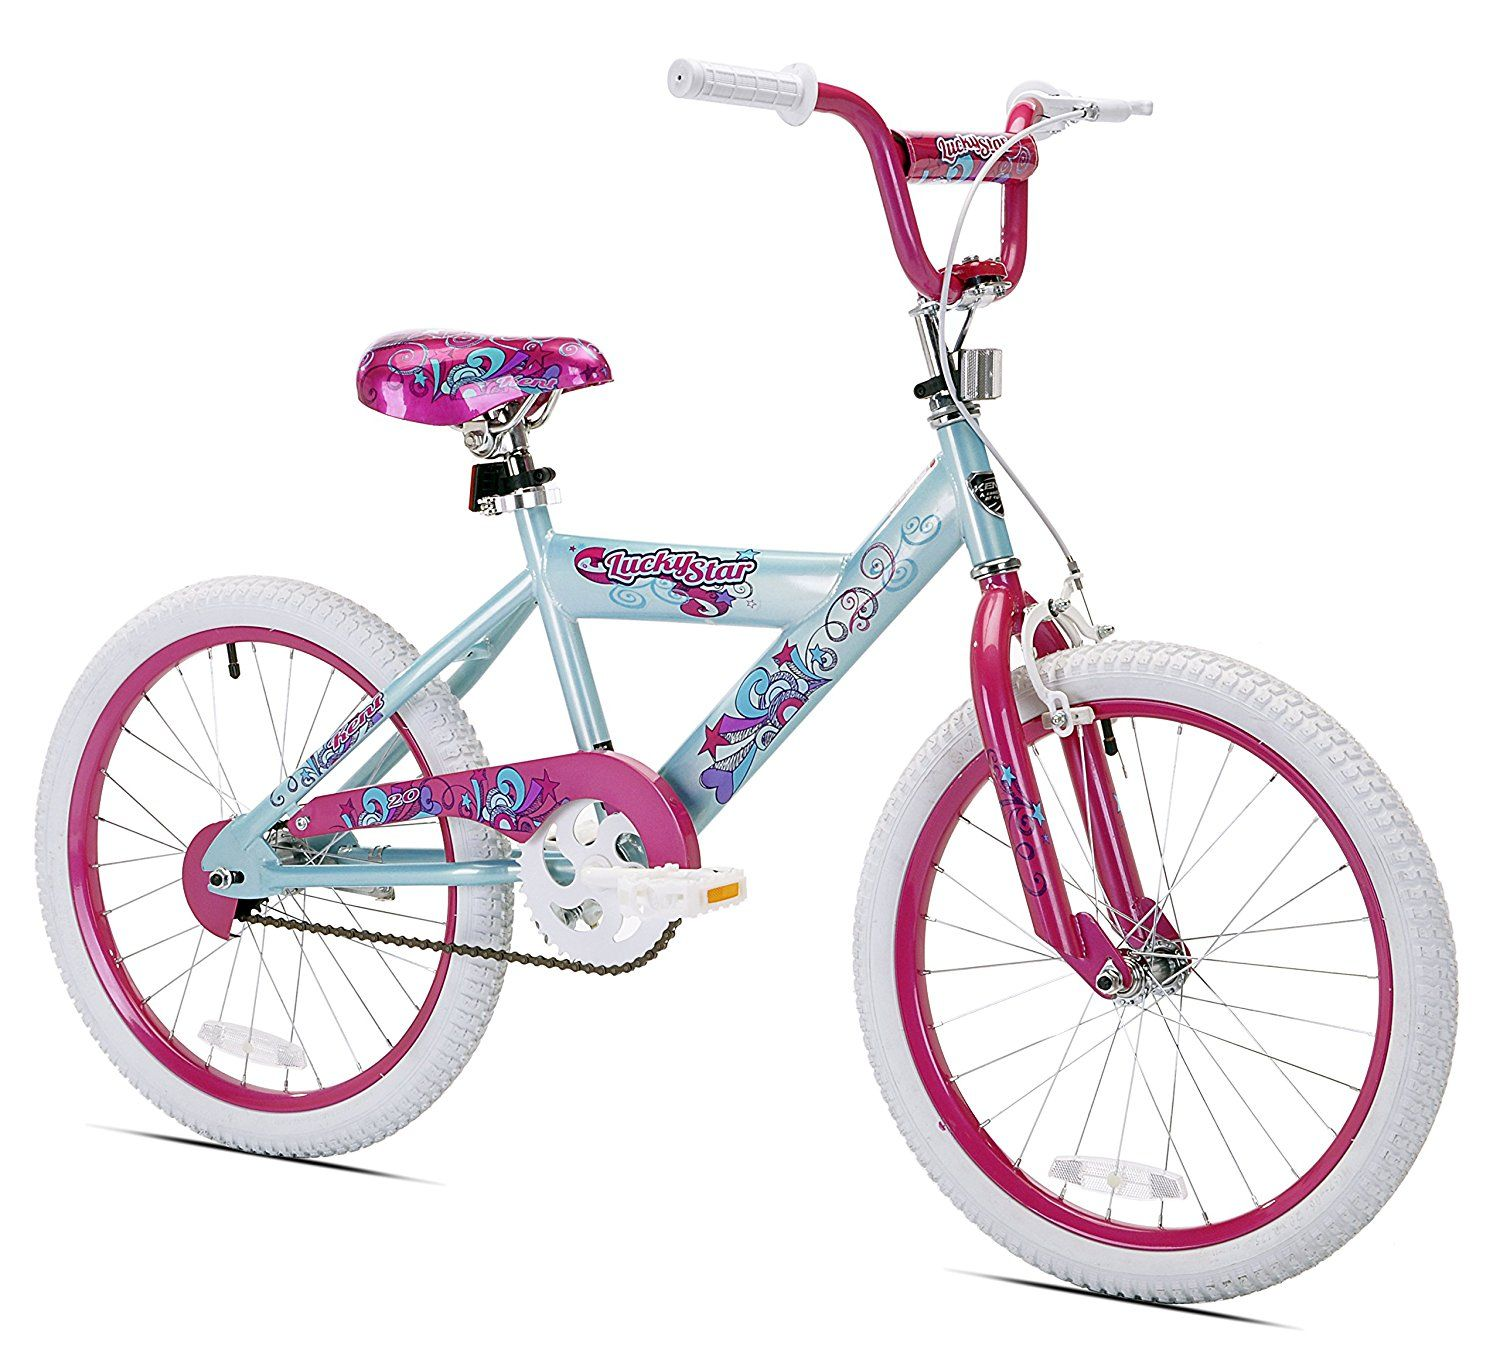 Y Velo Senior Balance Bike Kids Ride On Without Pedals Ages 18